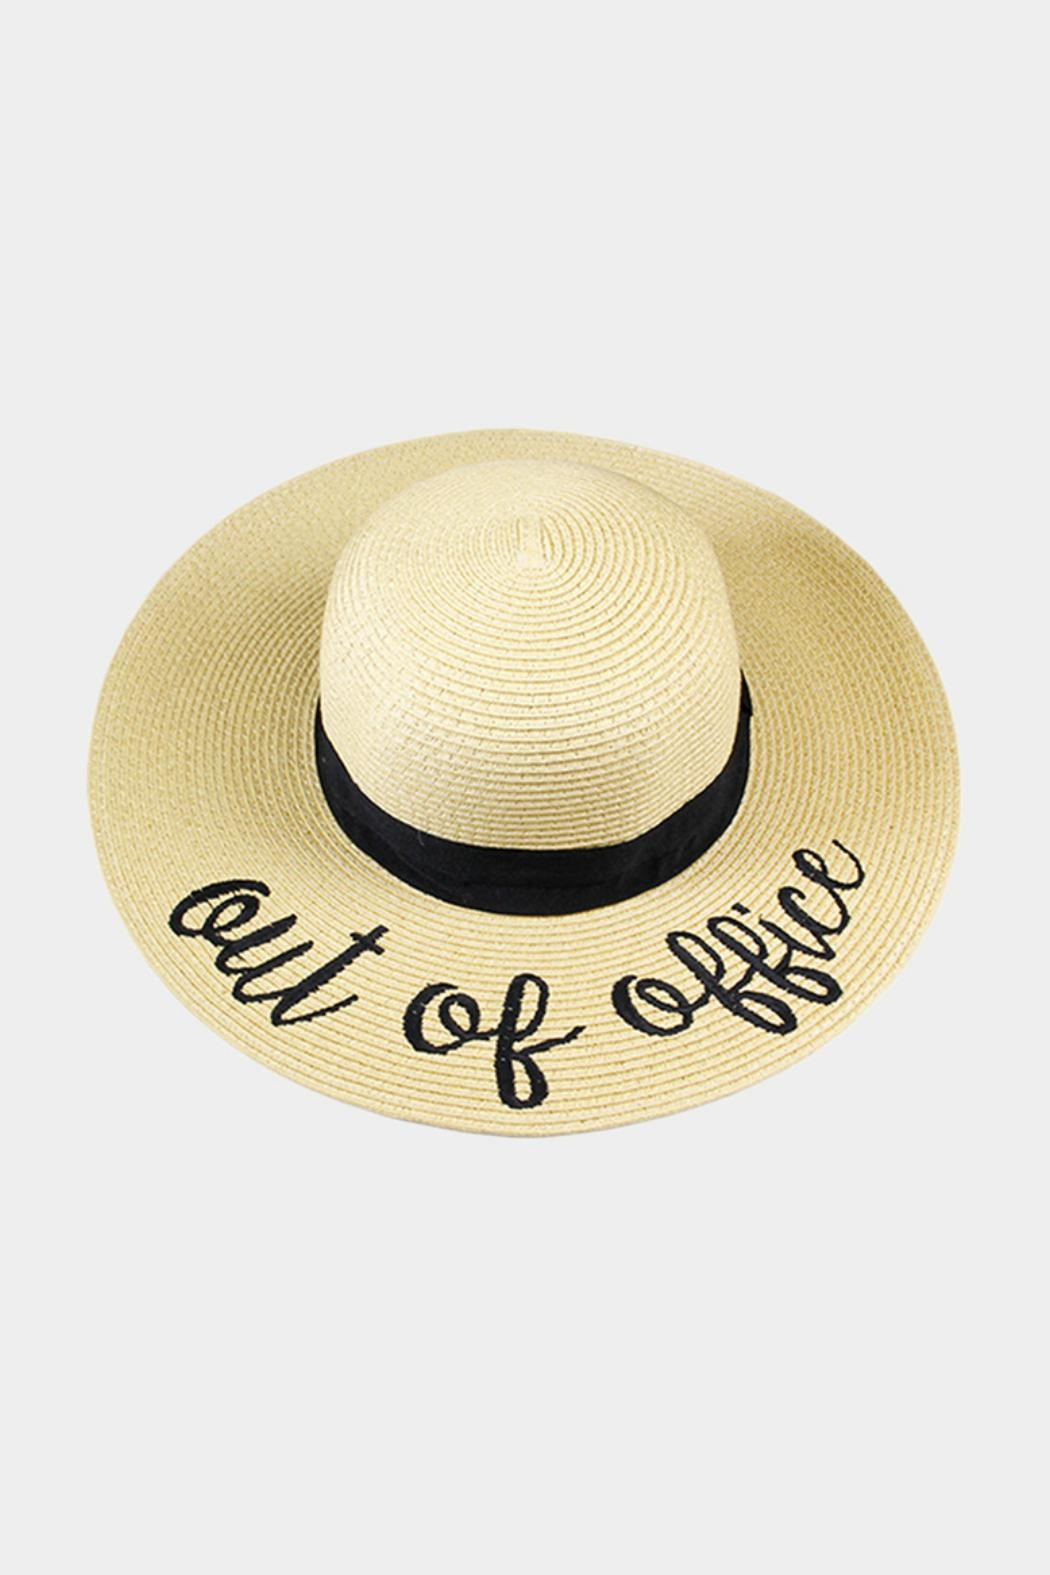 Embellish Embroidered Straw Hat - Main Image